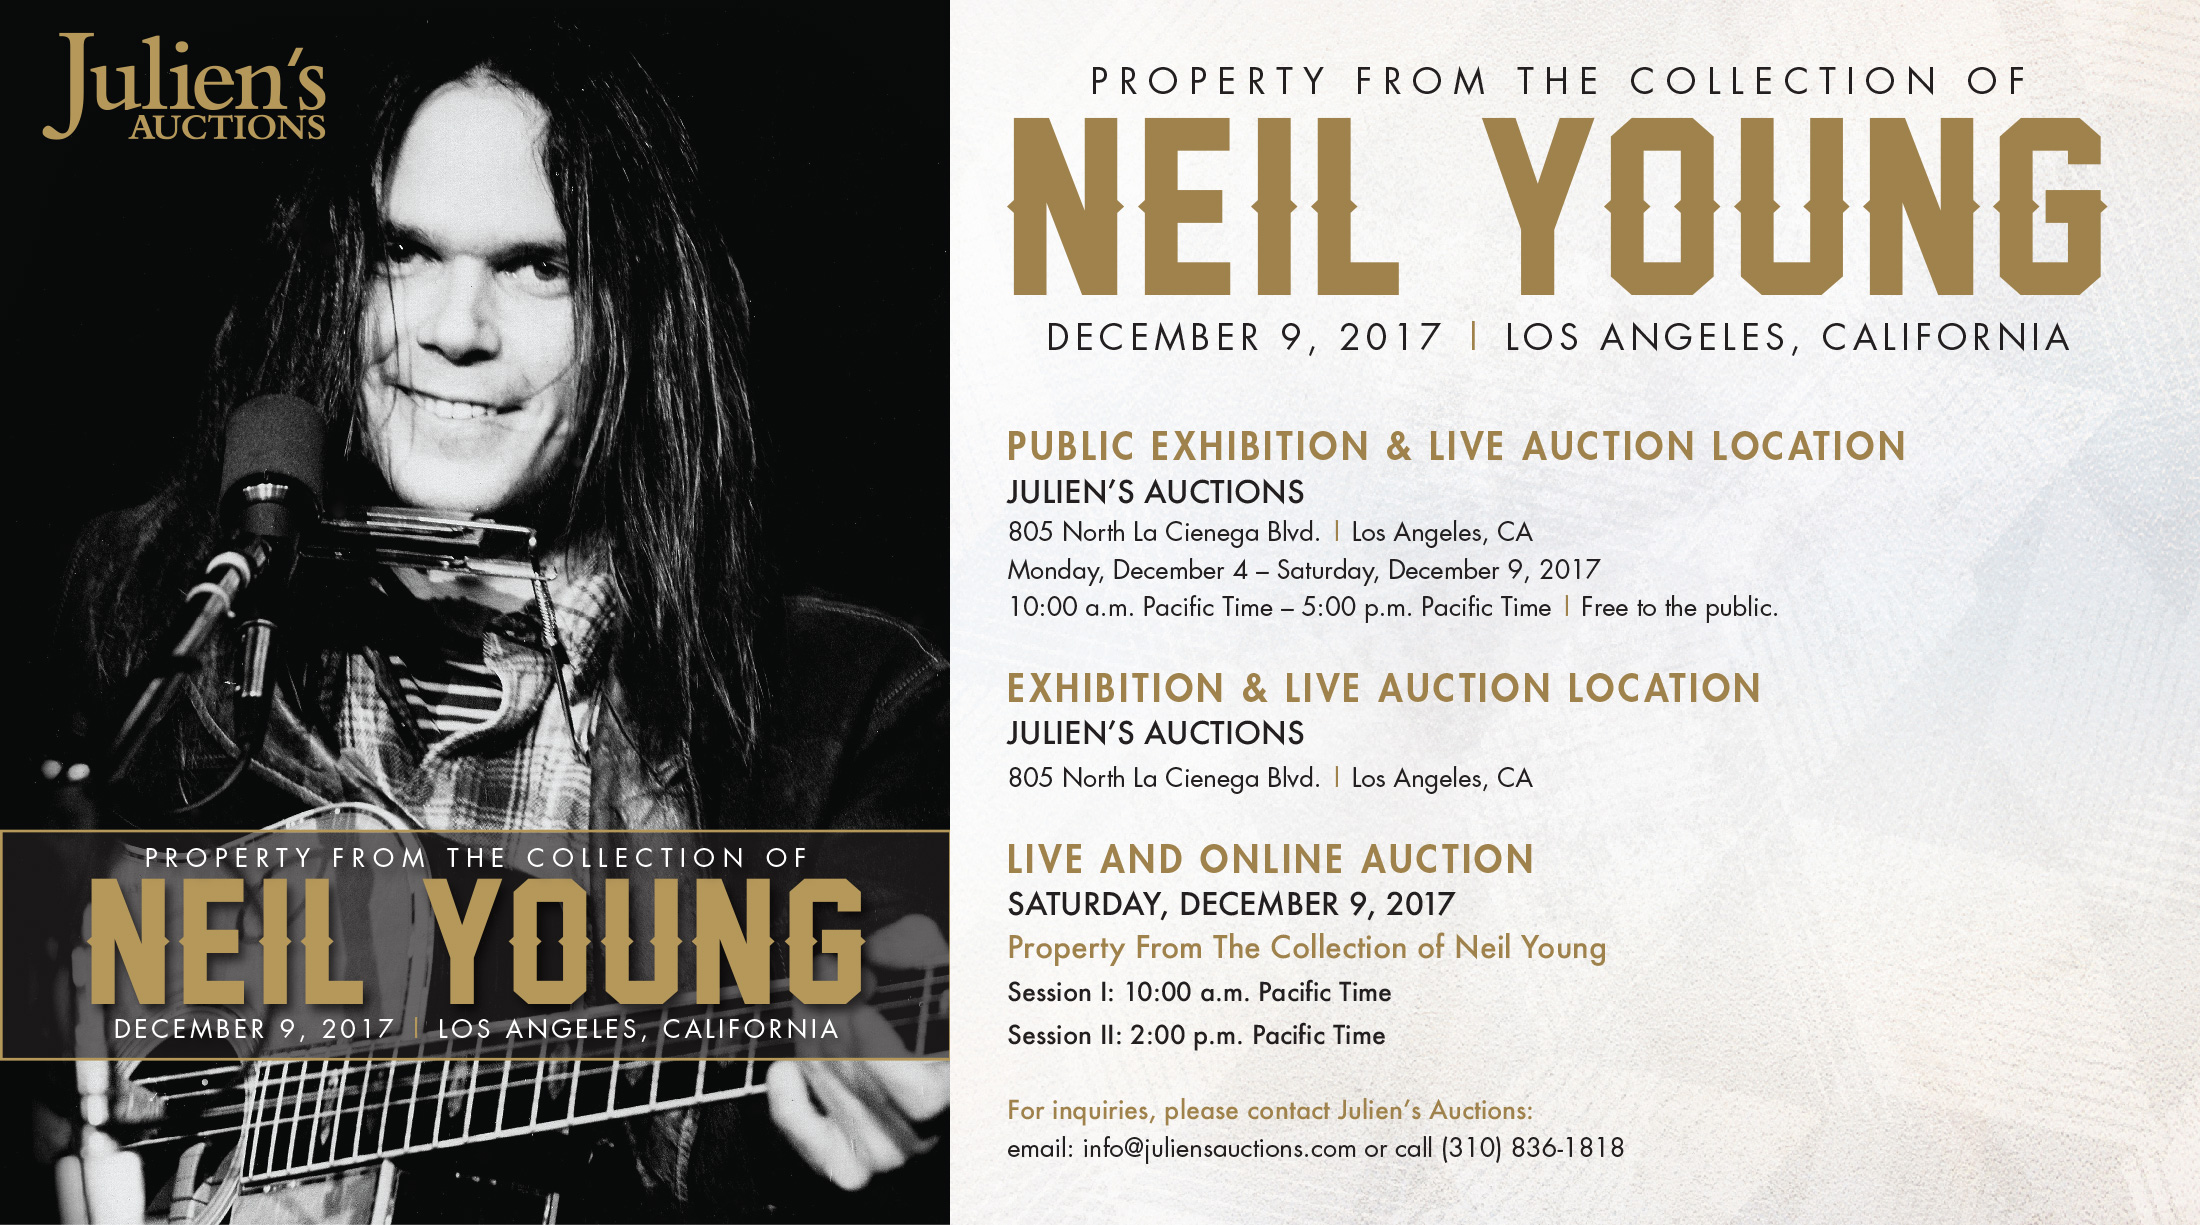 Property From The Collection Of Neil Young